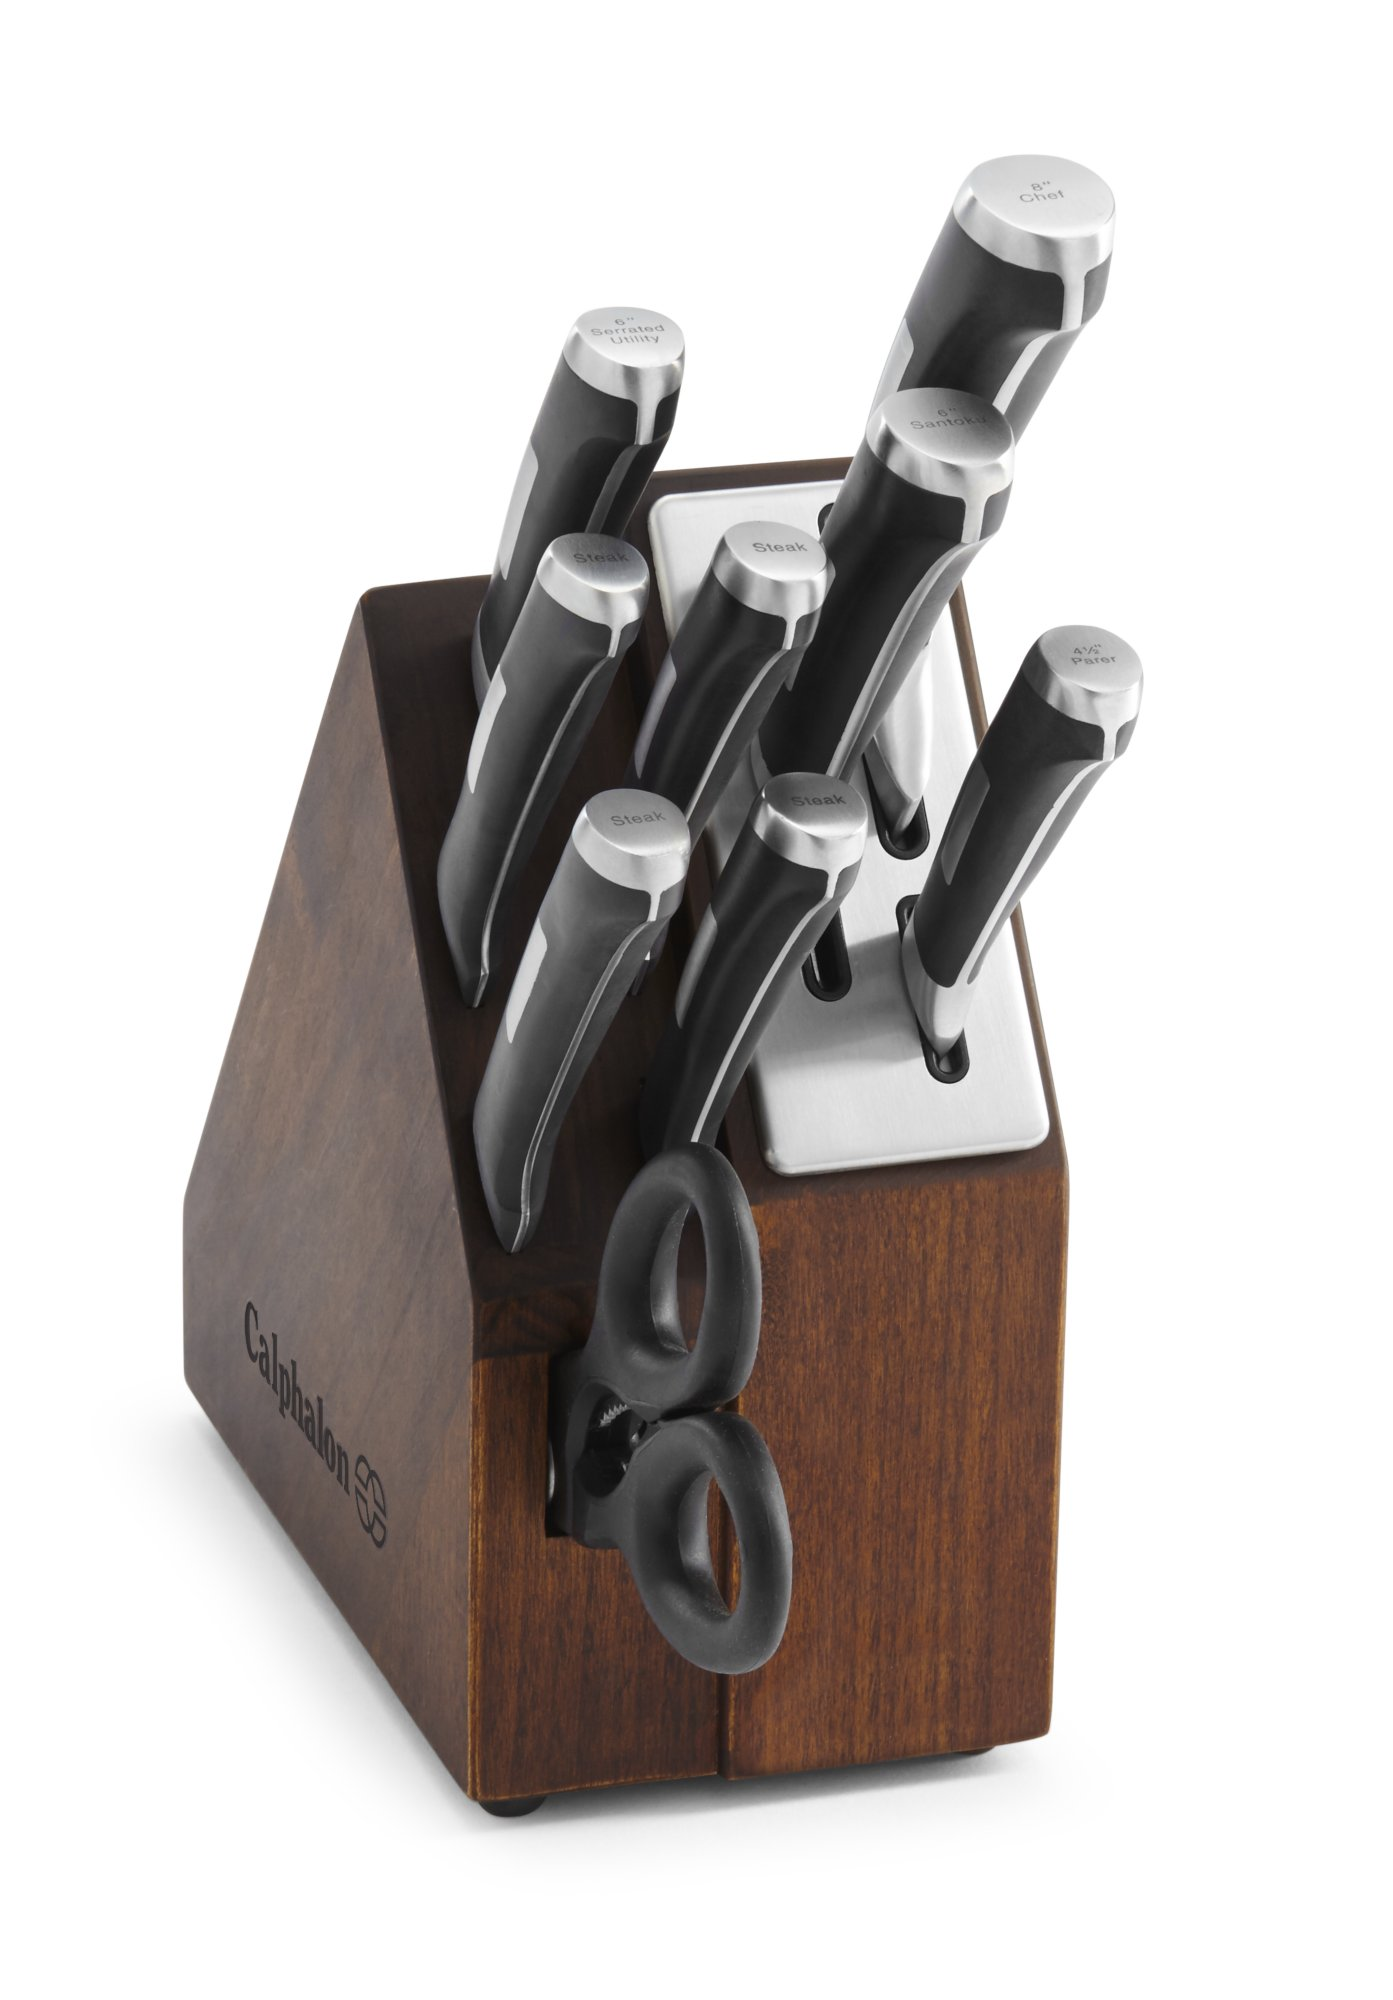 Calphalon Precision 10-Piece Space-saving Self-sharpening Knife Block Set